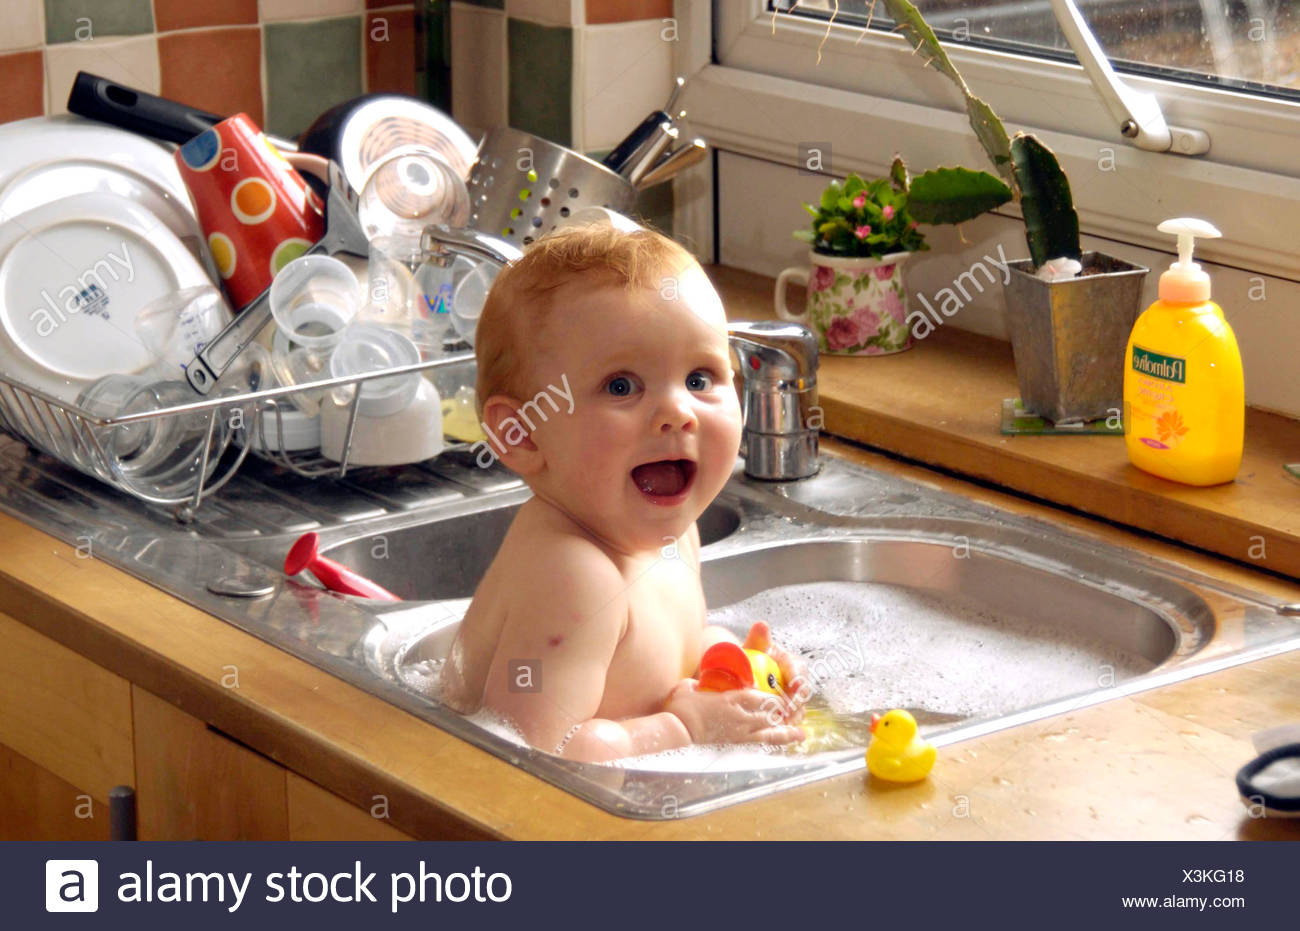 Female child sitting in kitchen sink full of soapy water holding ...